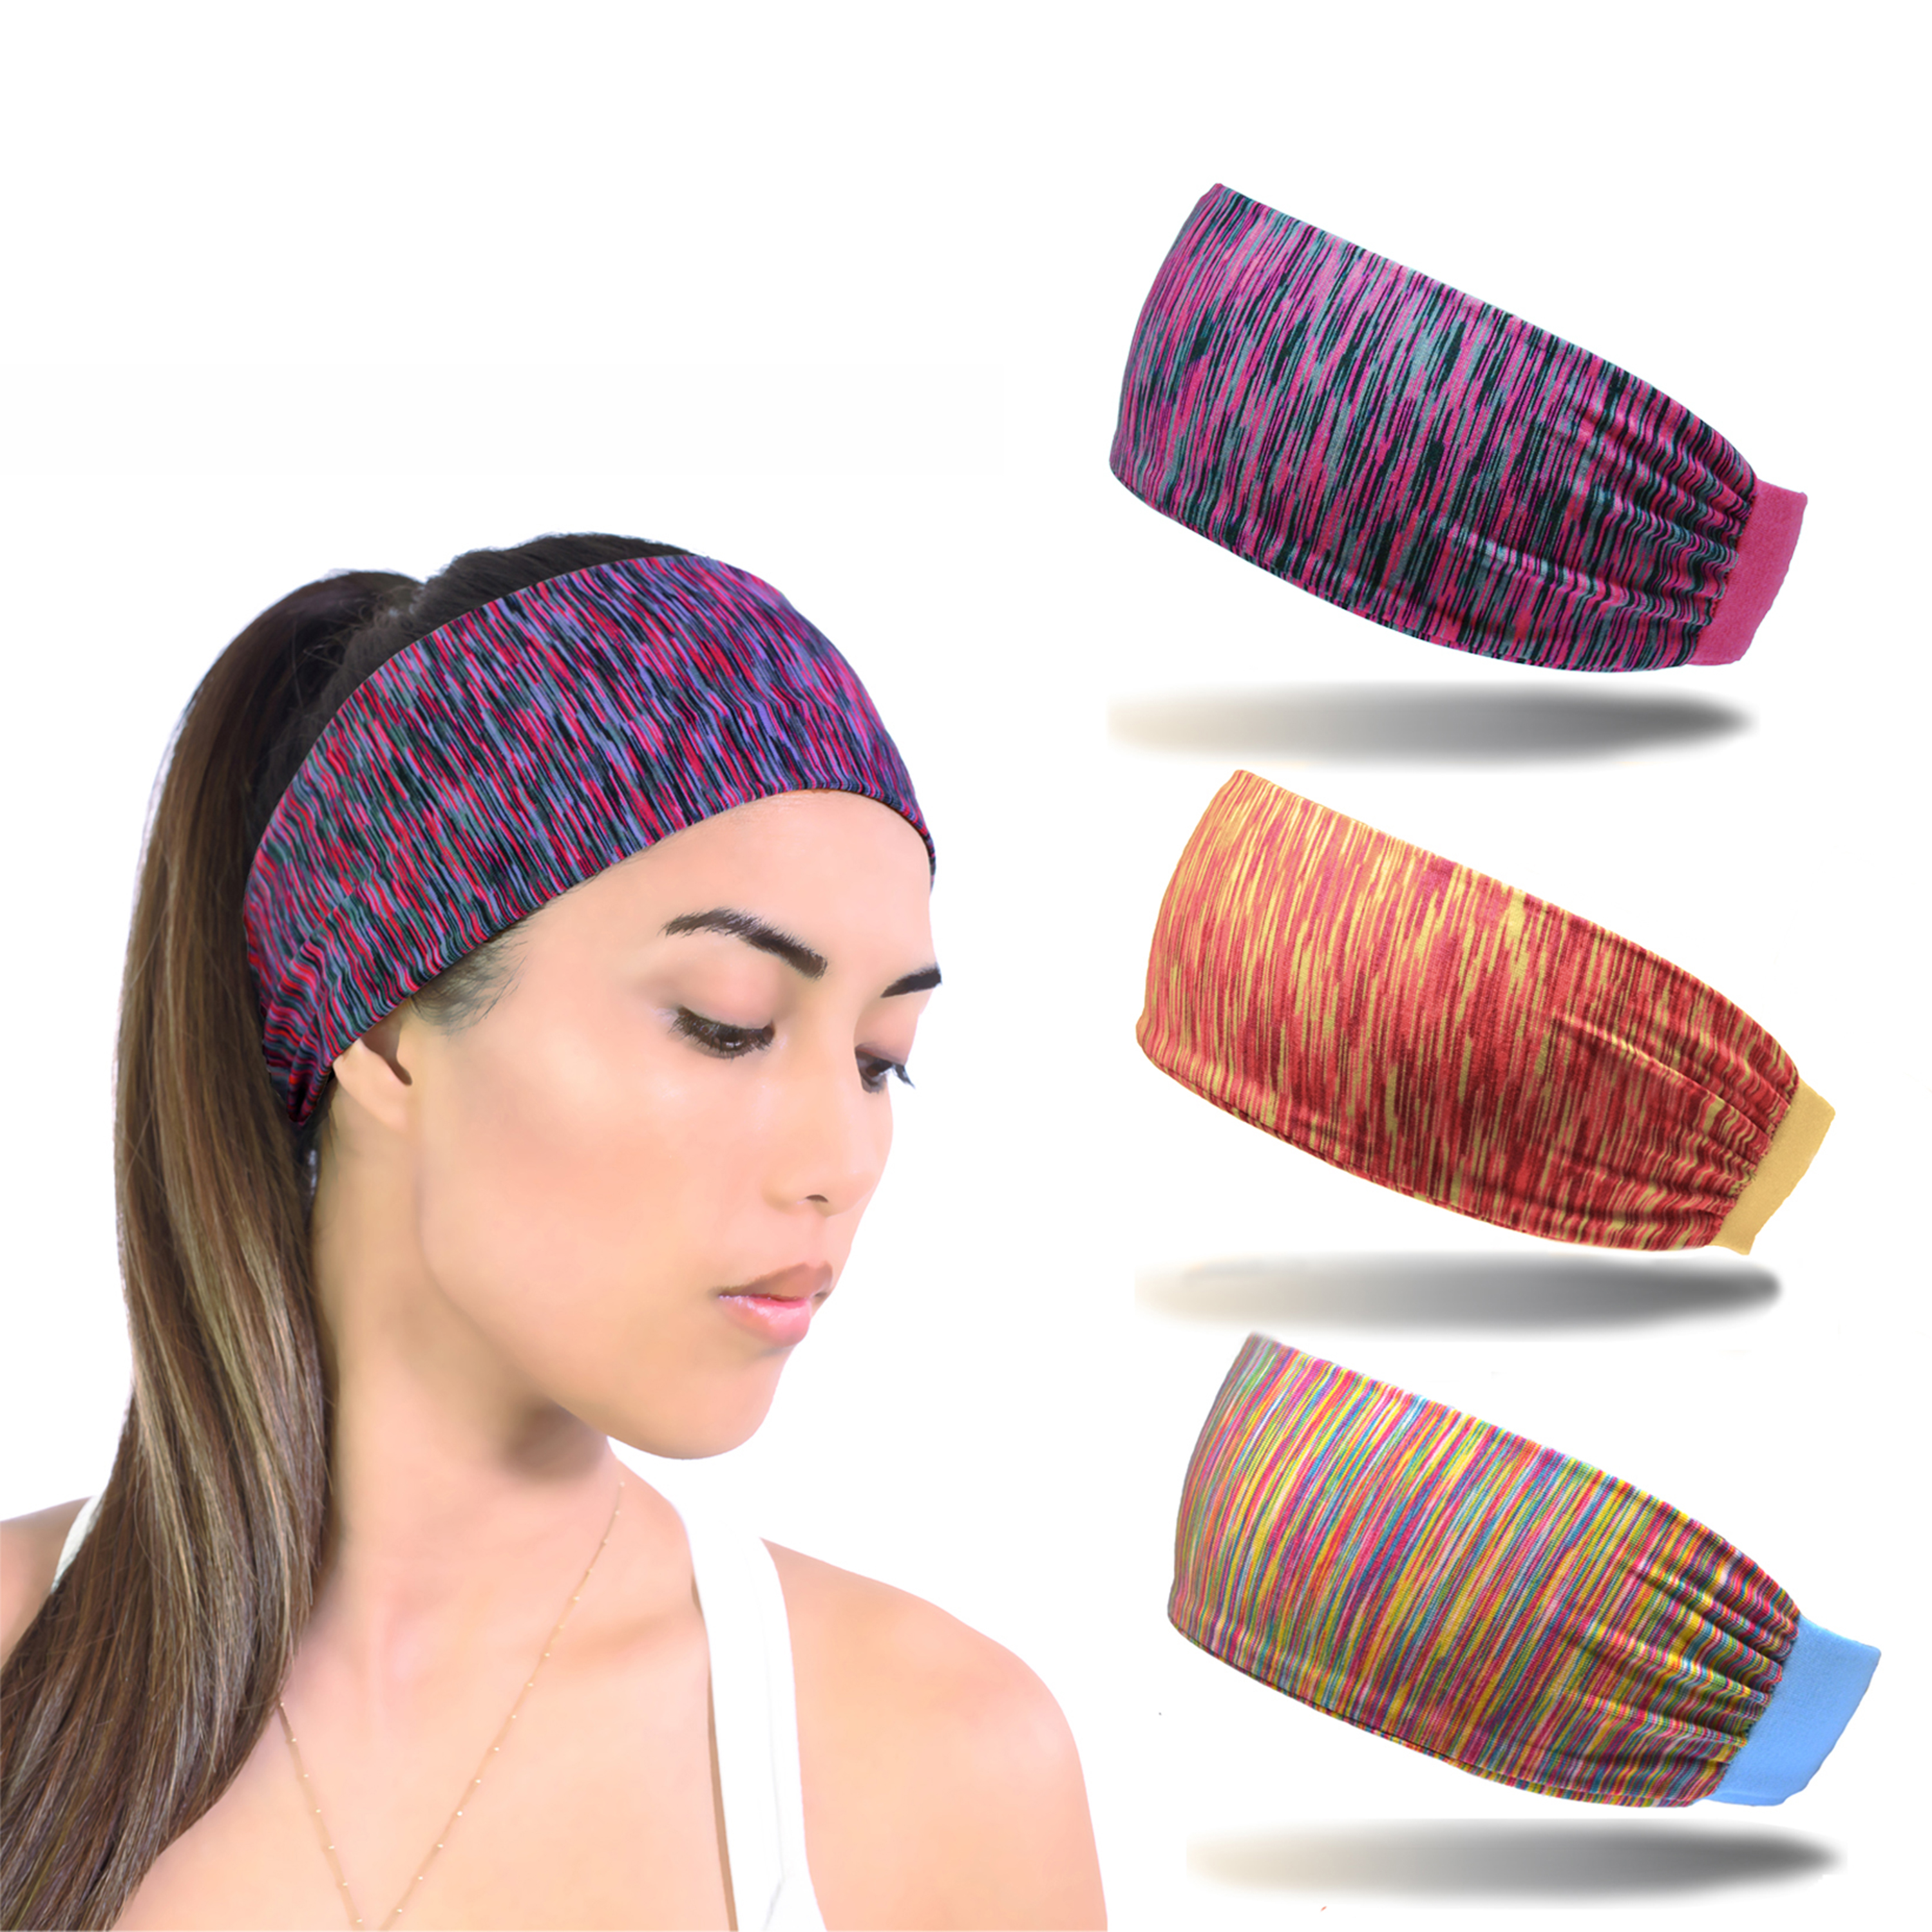 Beaute Galleria - Bundle 3pcs Moisture Wicking Wide Non-Slip Elastic, Sport Headband Sweatband Hair Band, Perfect For Running Gym Yoga Workout, Soft Comfortable, Fits all Women & Men